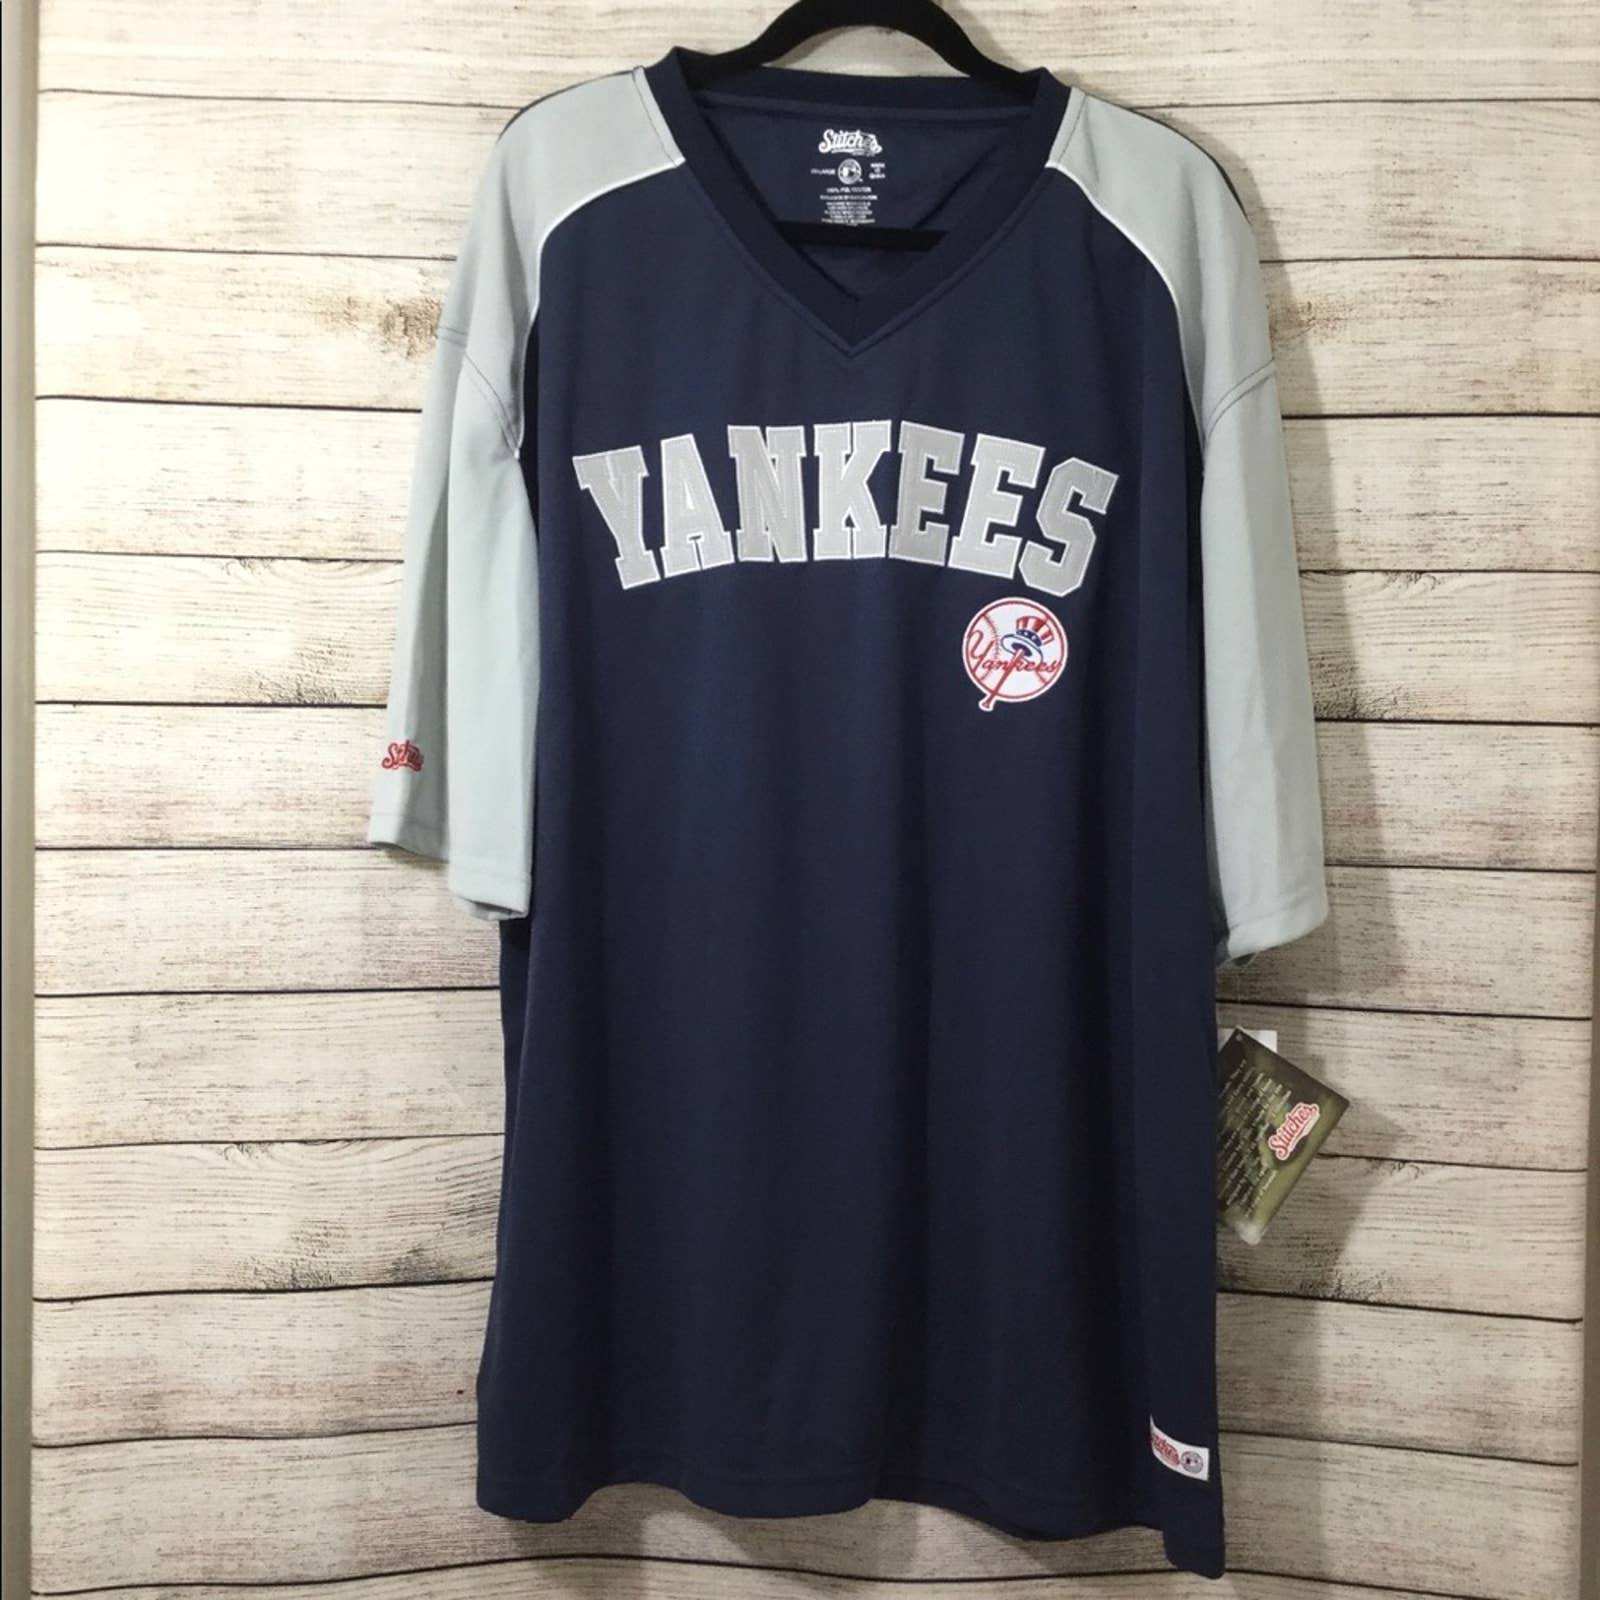 NEW Yankees Spell Out Jersey Size 2X